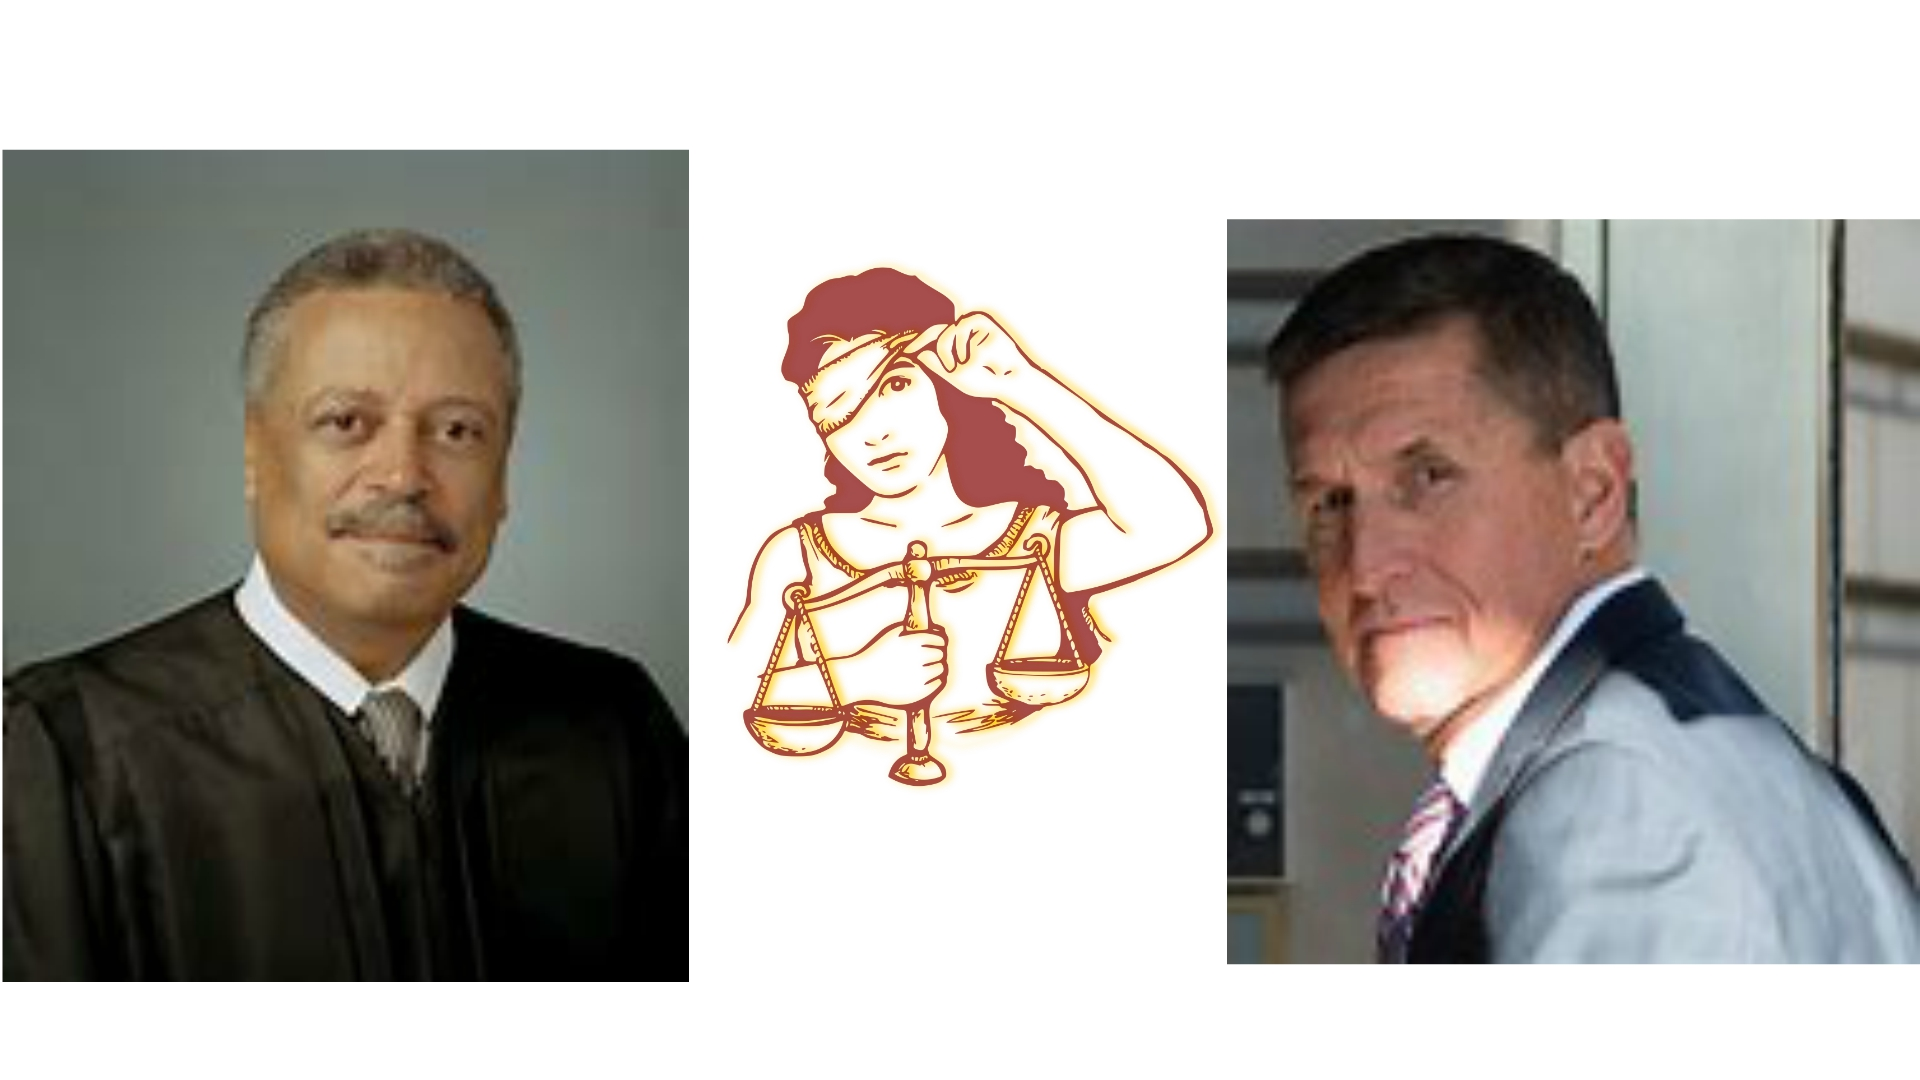 Judge Sullivan Draws The Line – Seeks To Stop Coup Inquiry